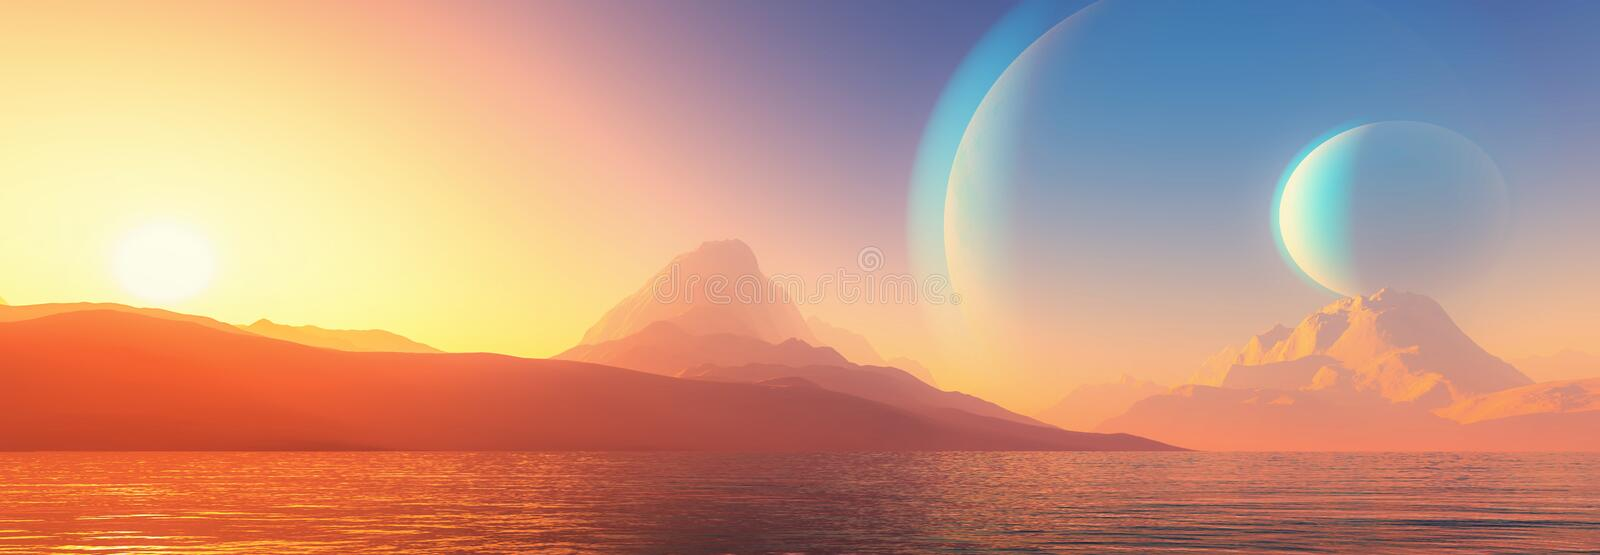 Exoplanet fantastiskt landskap royaltyfri illustrationer